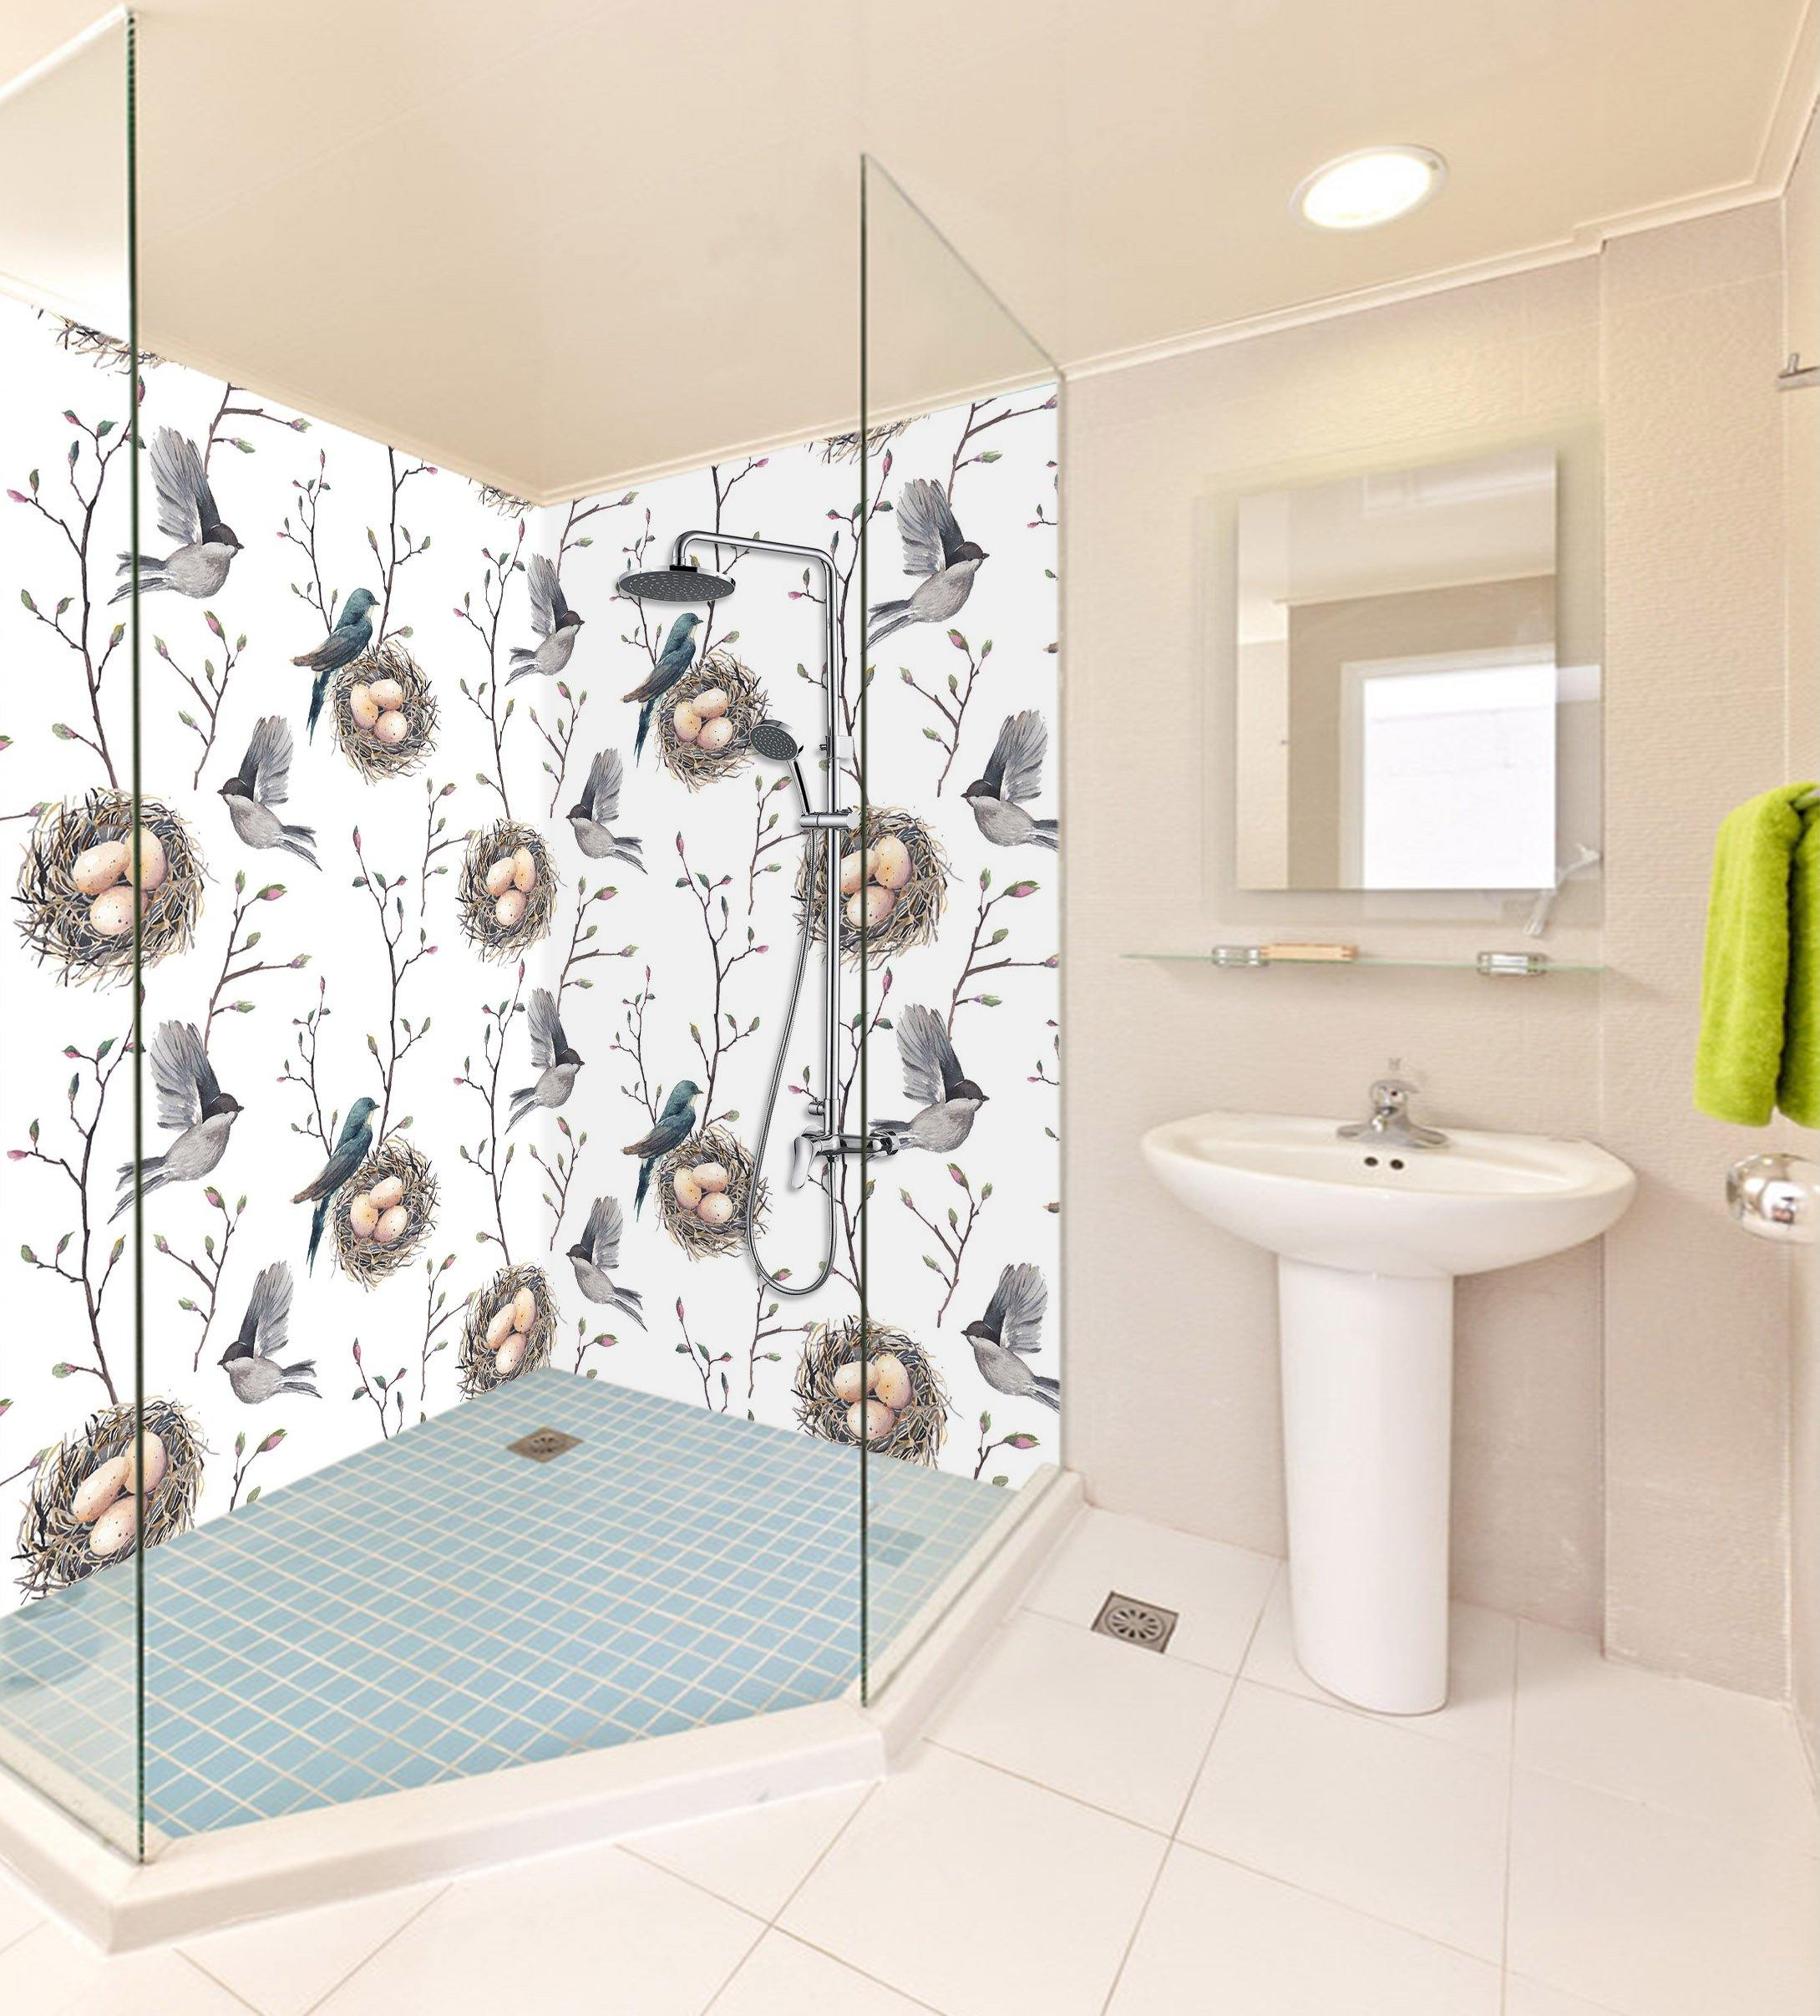 3D Birds Nest Eggs 68 Bathroom Wallpaper